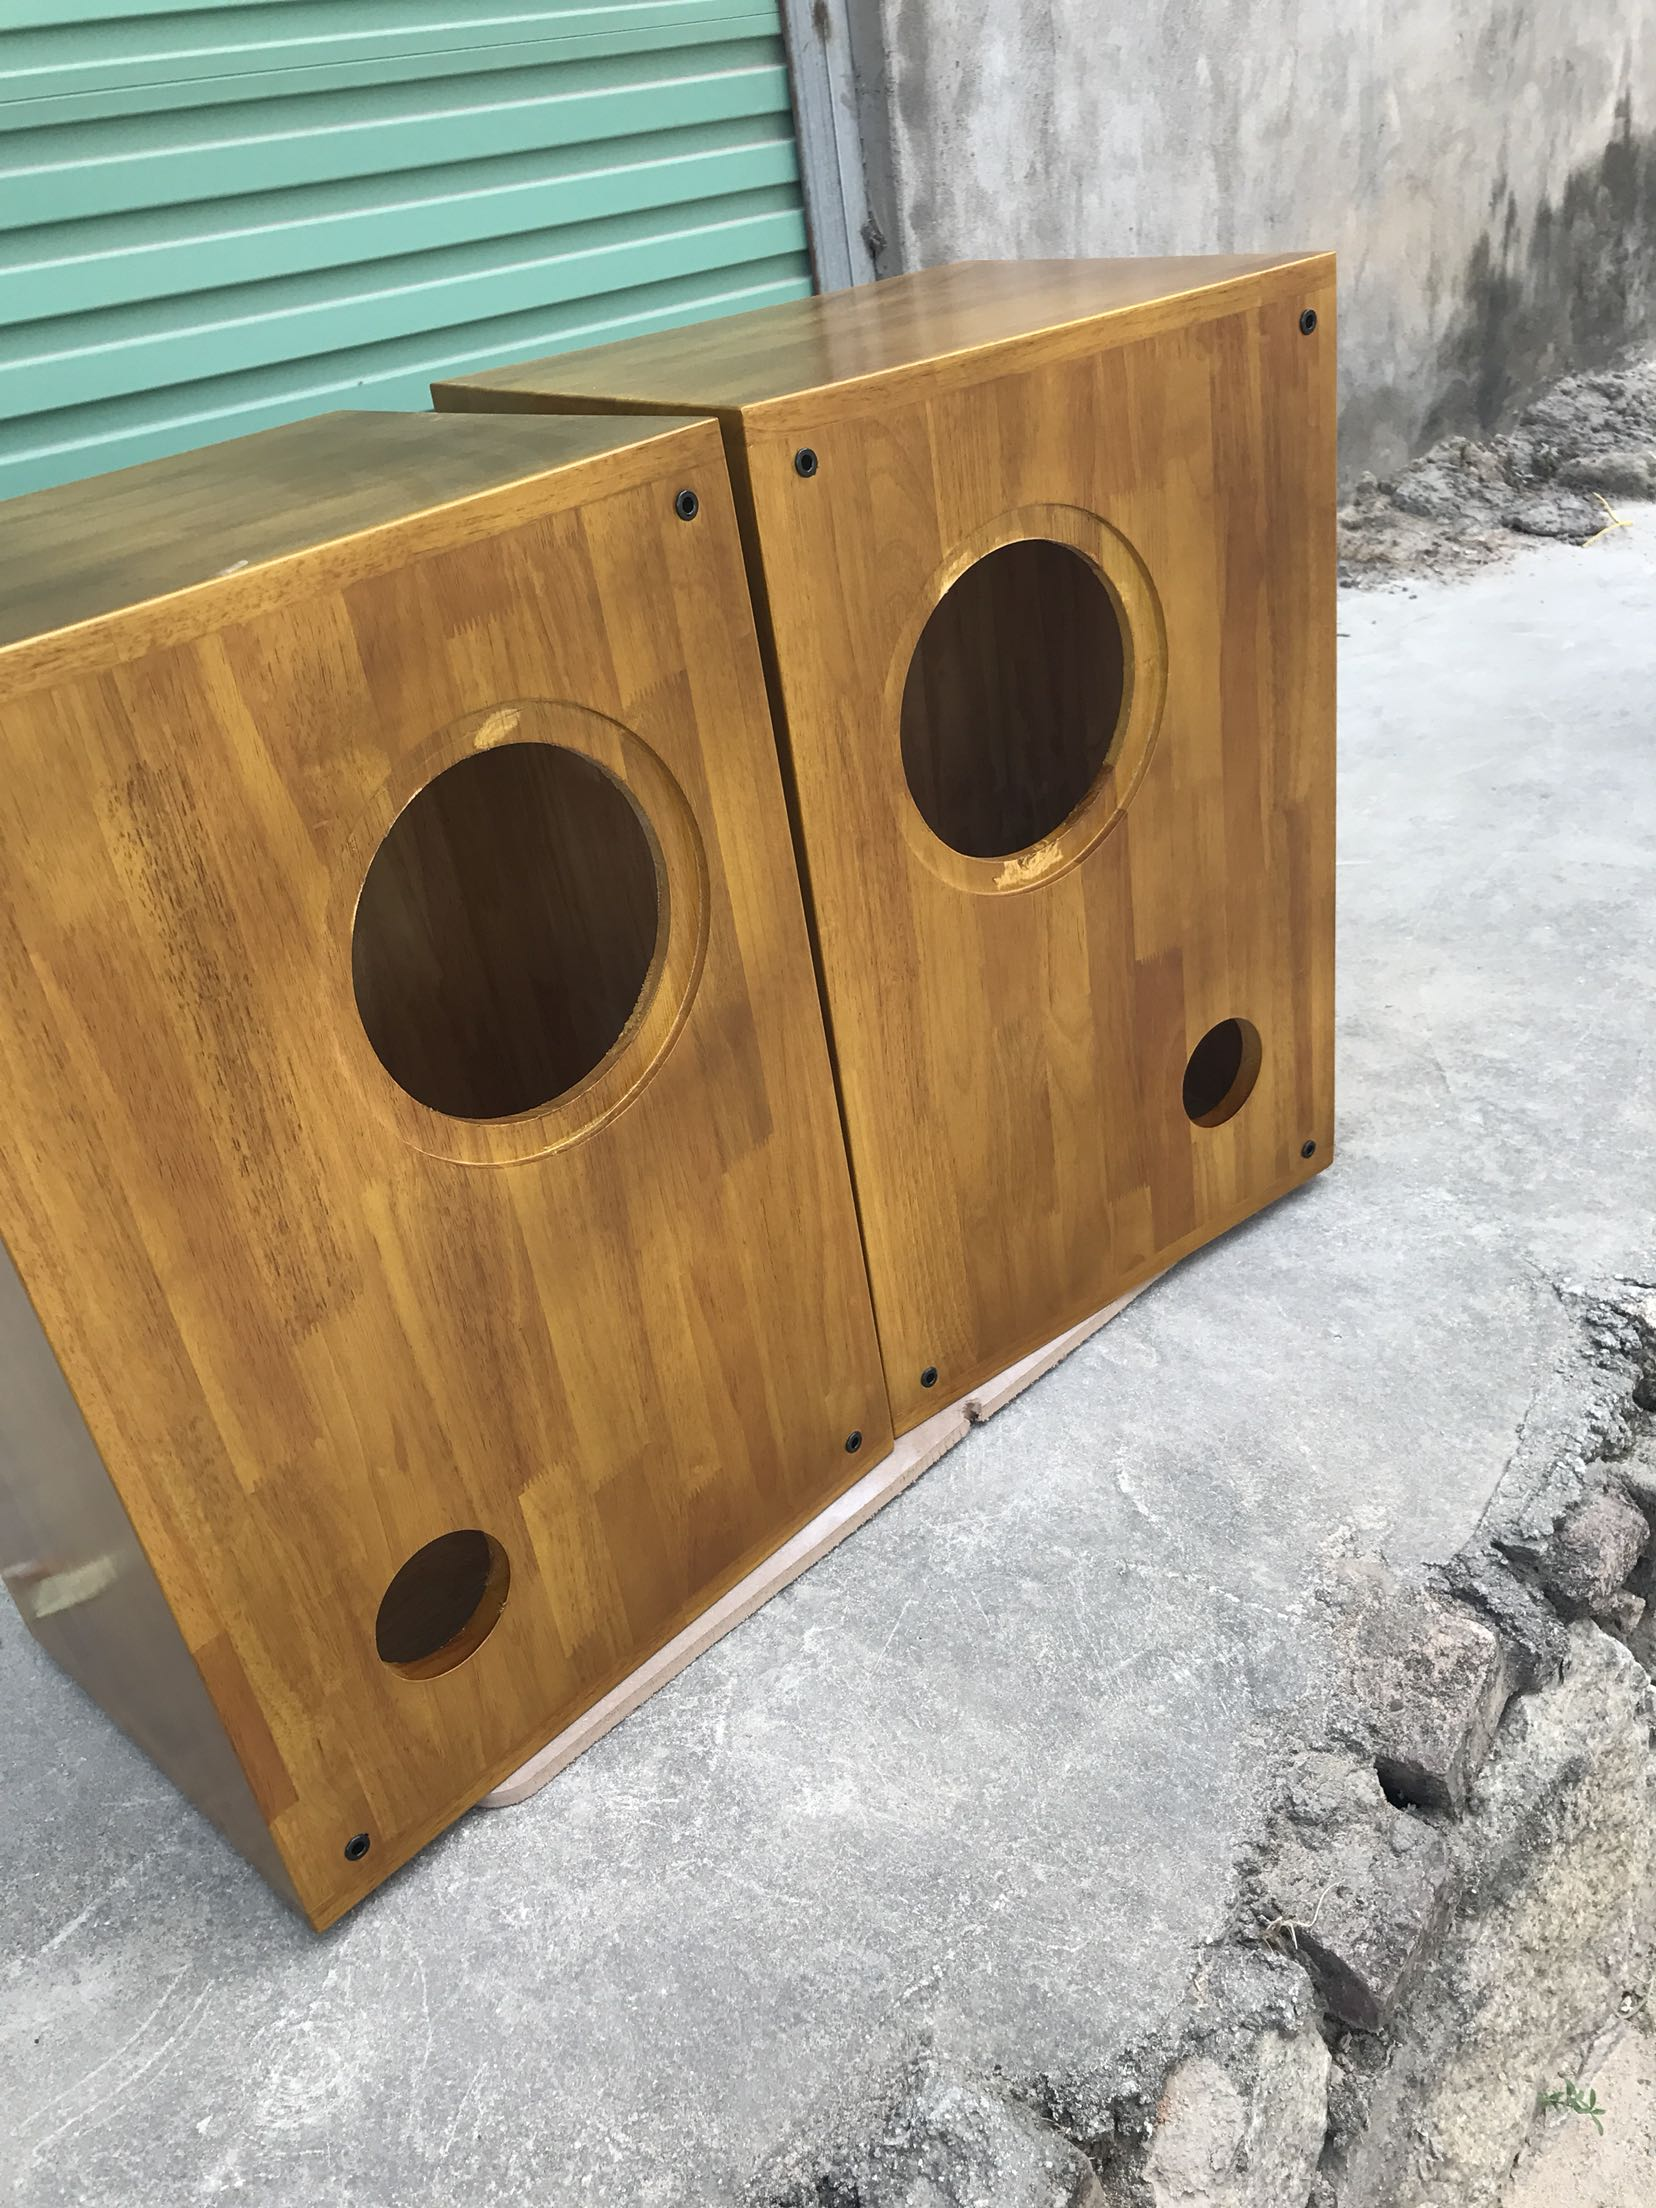 Custom morning glory 8 inch HIFI MG-F8 full frequency loudspeaker unit supporting large wooden Bookshelf Speakers empty